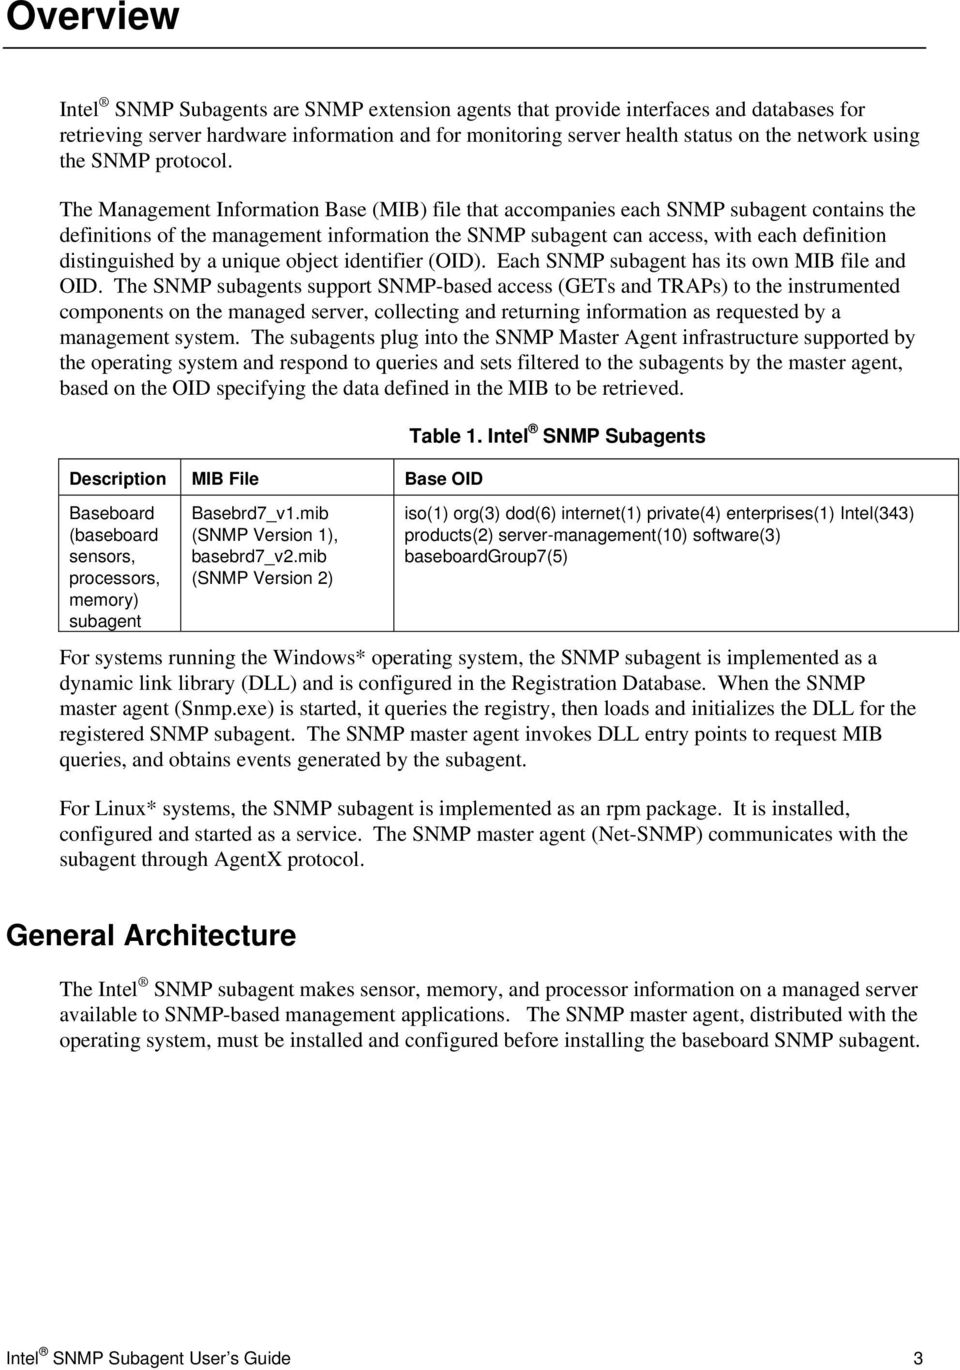 The Management Information Base (MIB) file that accompanies each SNMP subagent contains the definitions of the management information the SNMP subagent can access, with each definition distinguished